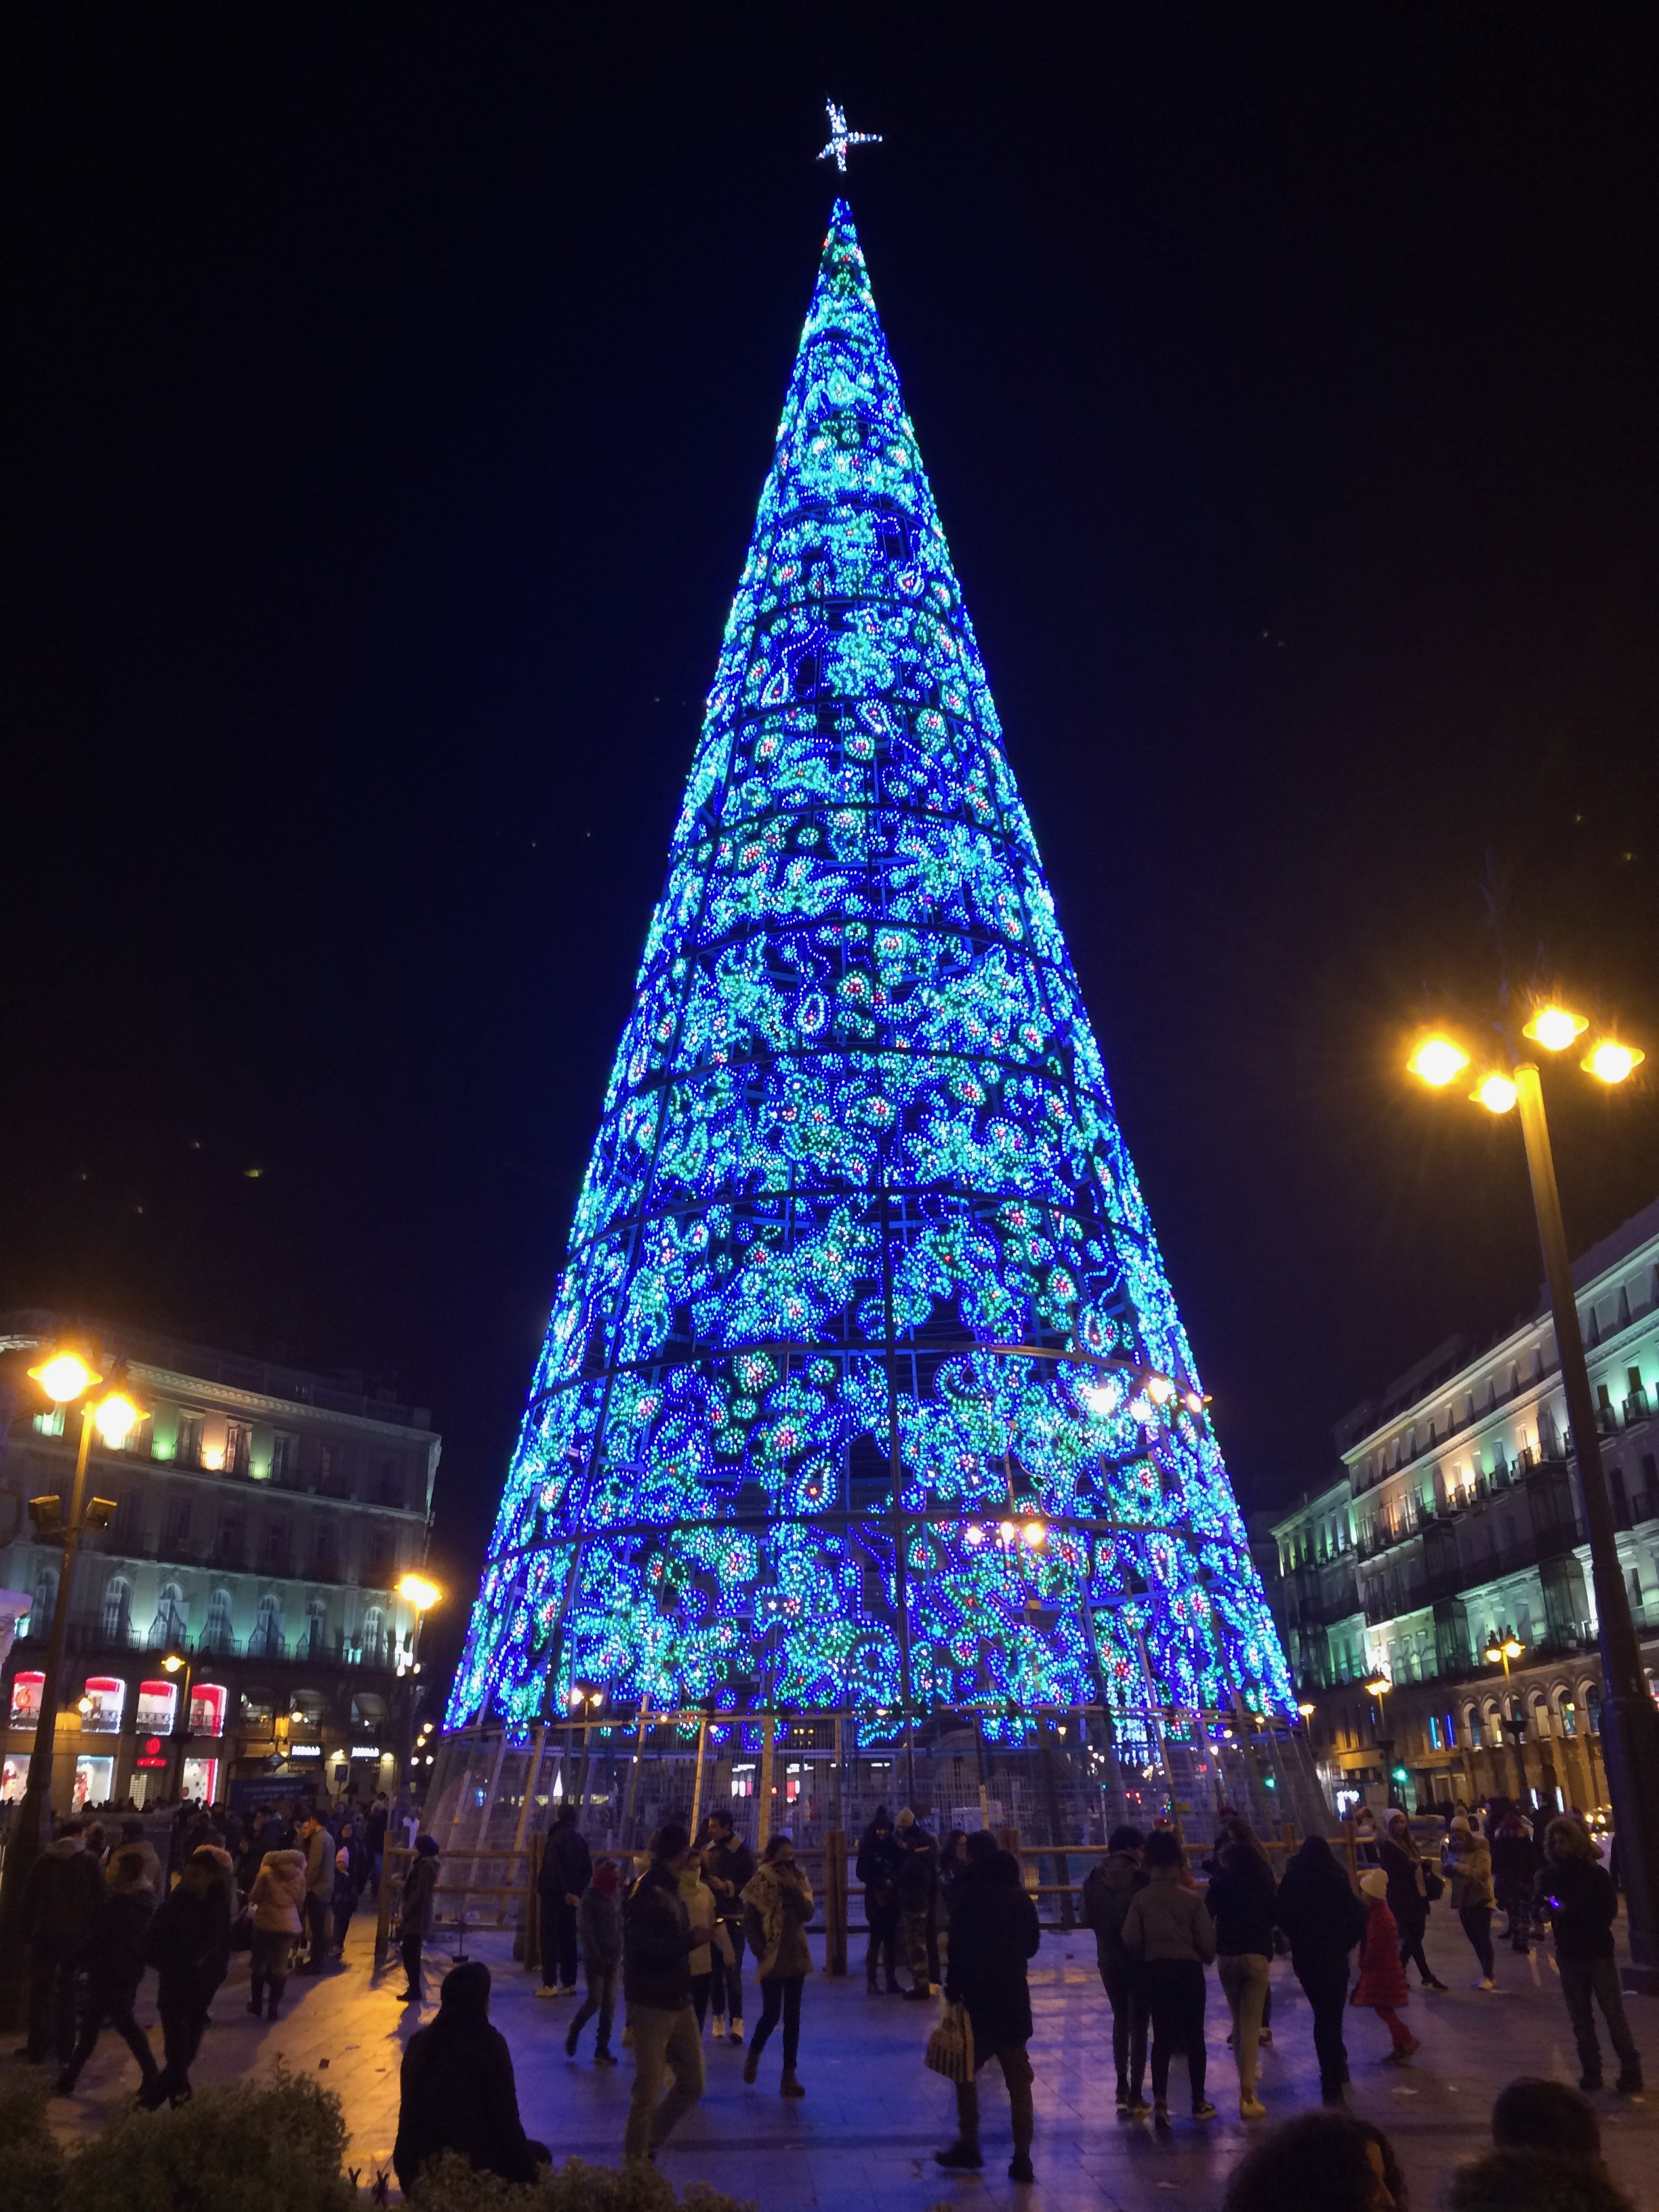 Christmas tree in Placa de Sol, Madrid, Spain.